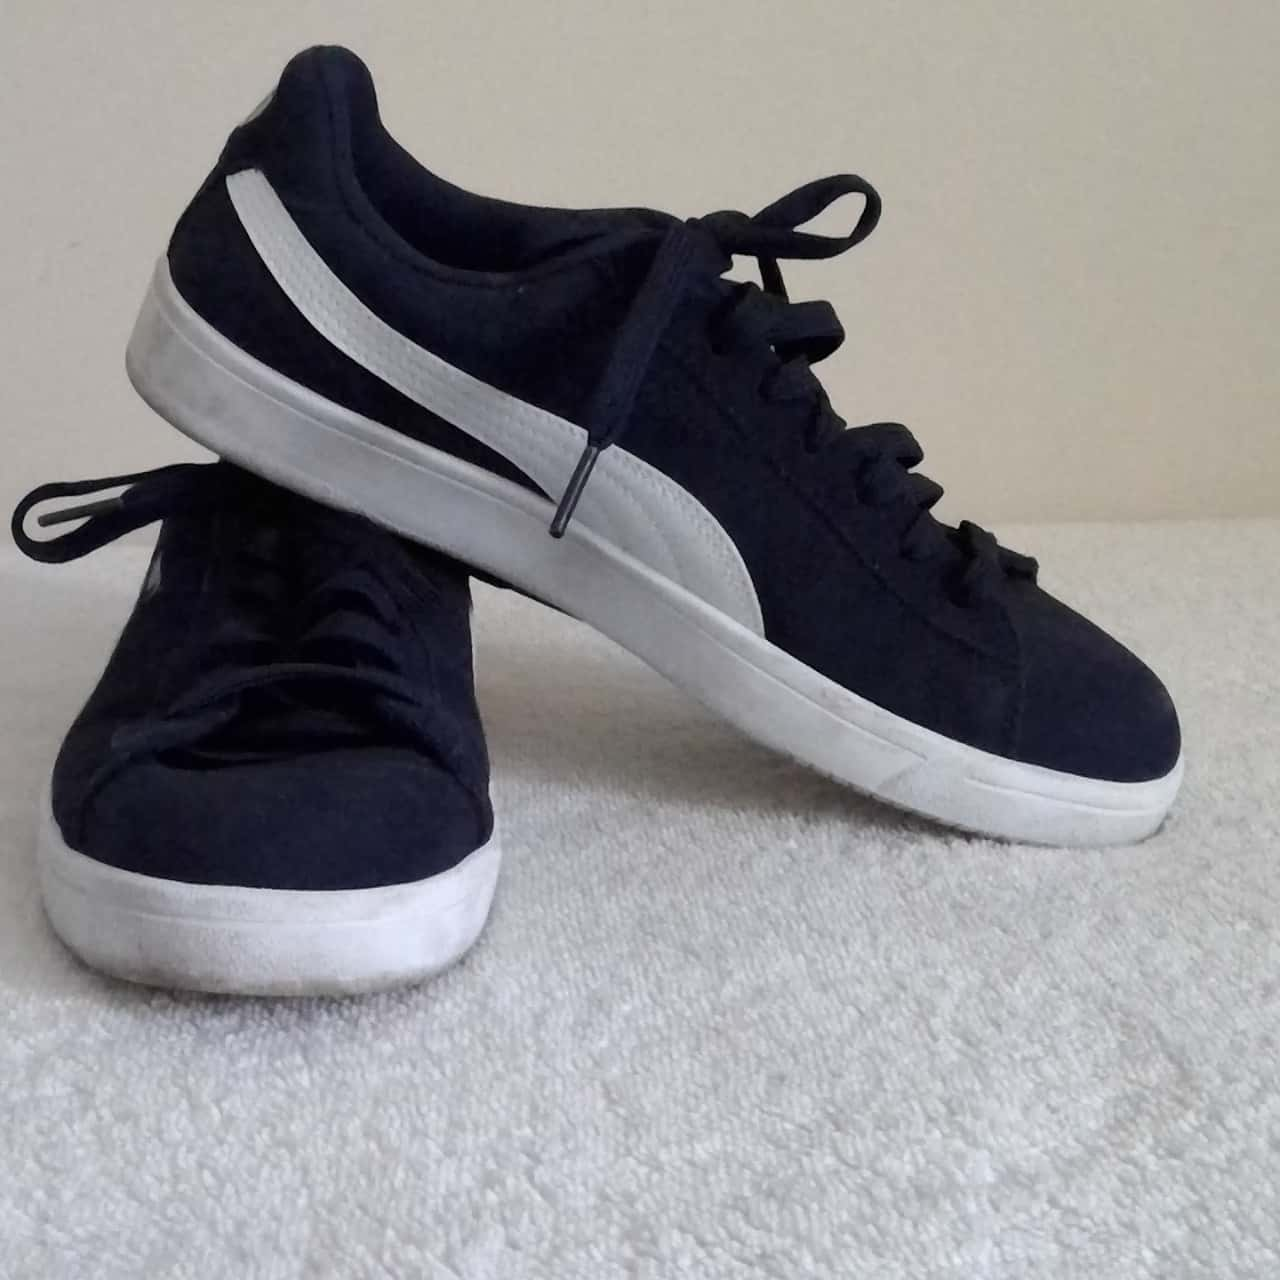 Mens  PUMA CASUAL LACE UPS  Size 7 (Mens) OR Women's Size 9 Blue/White